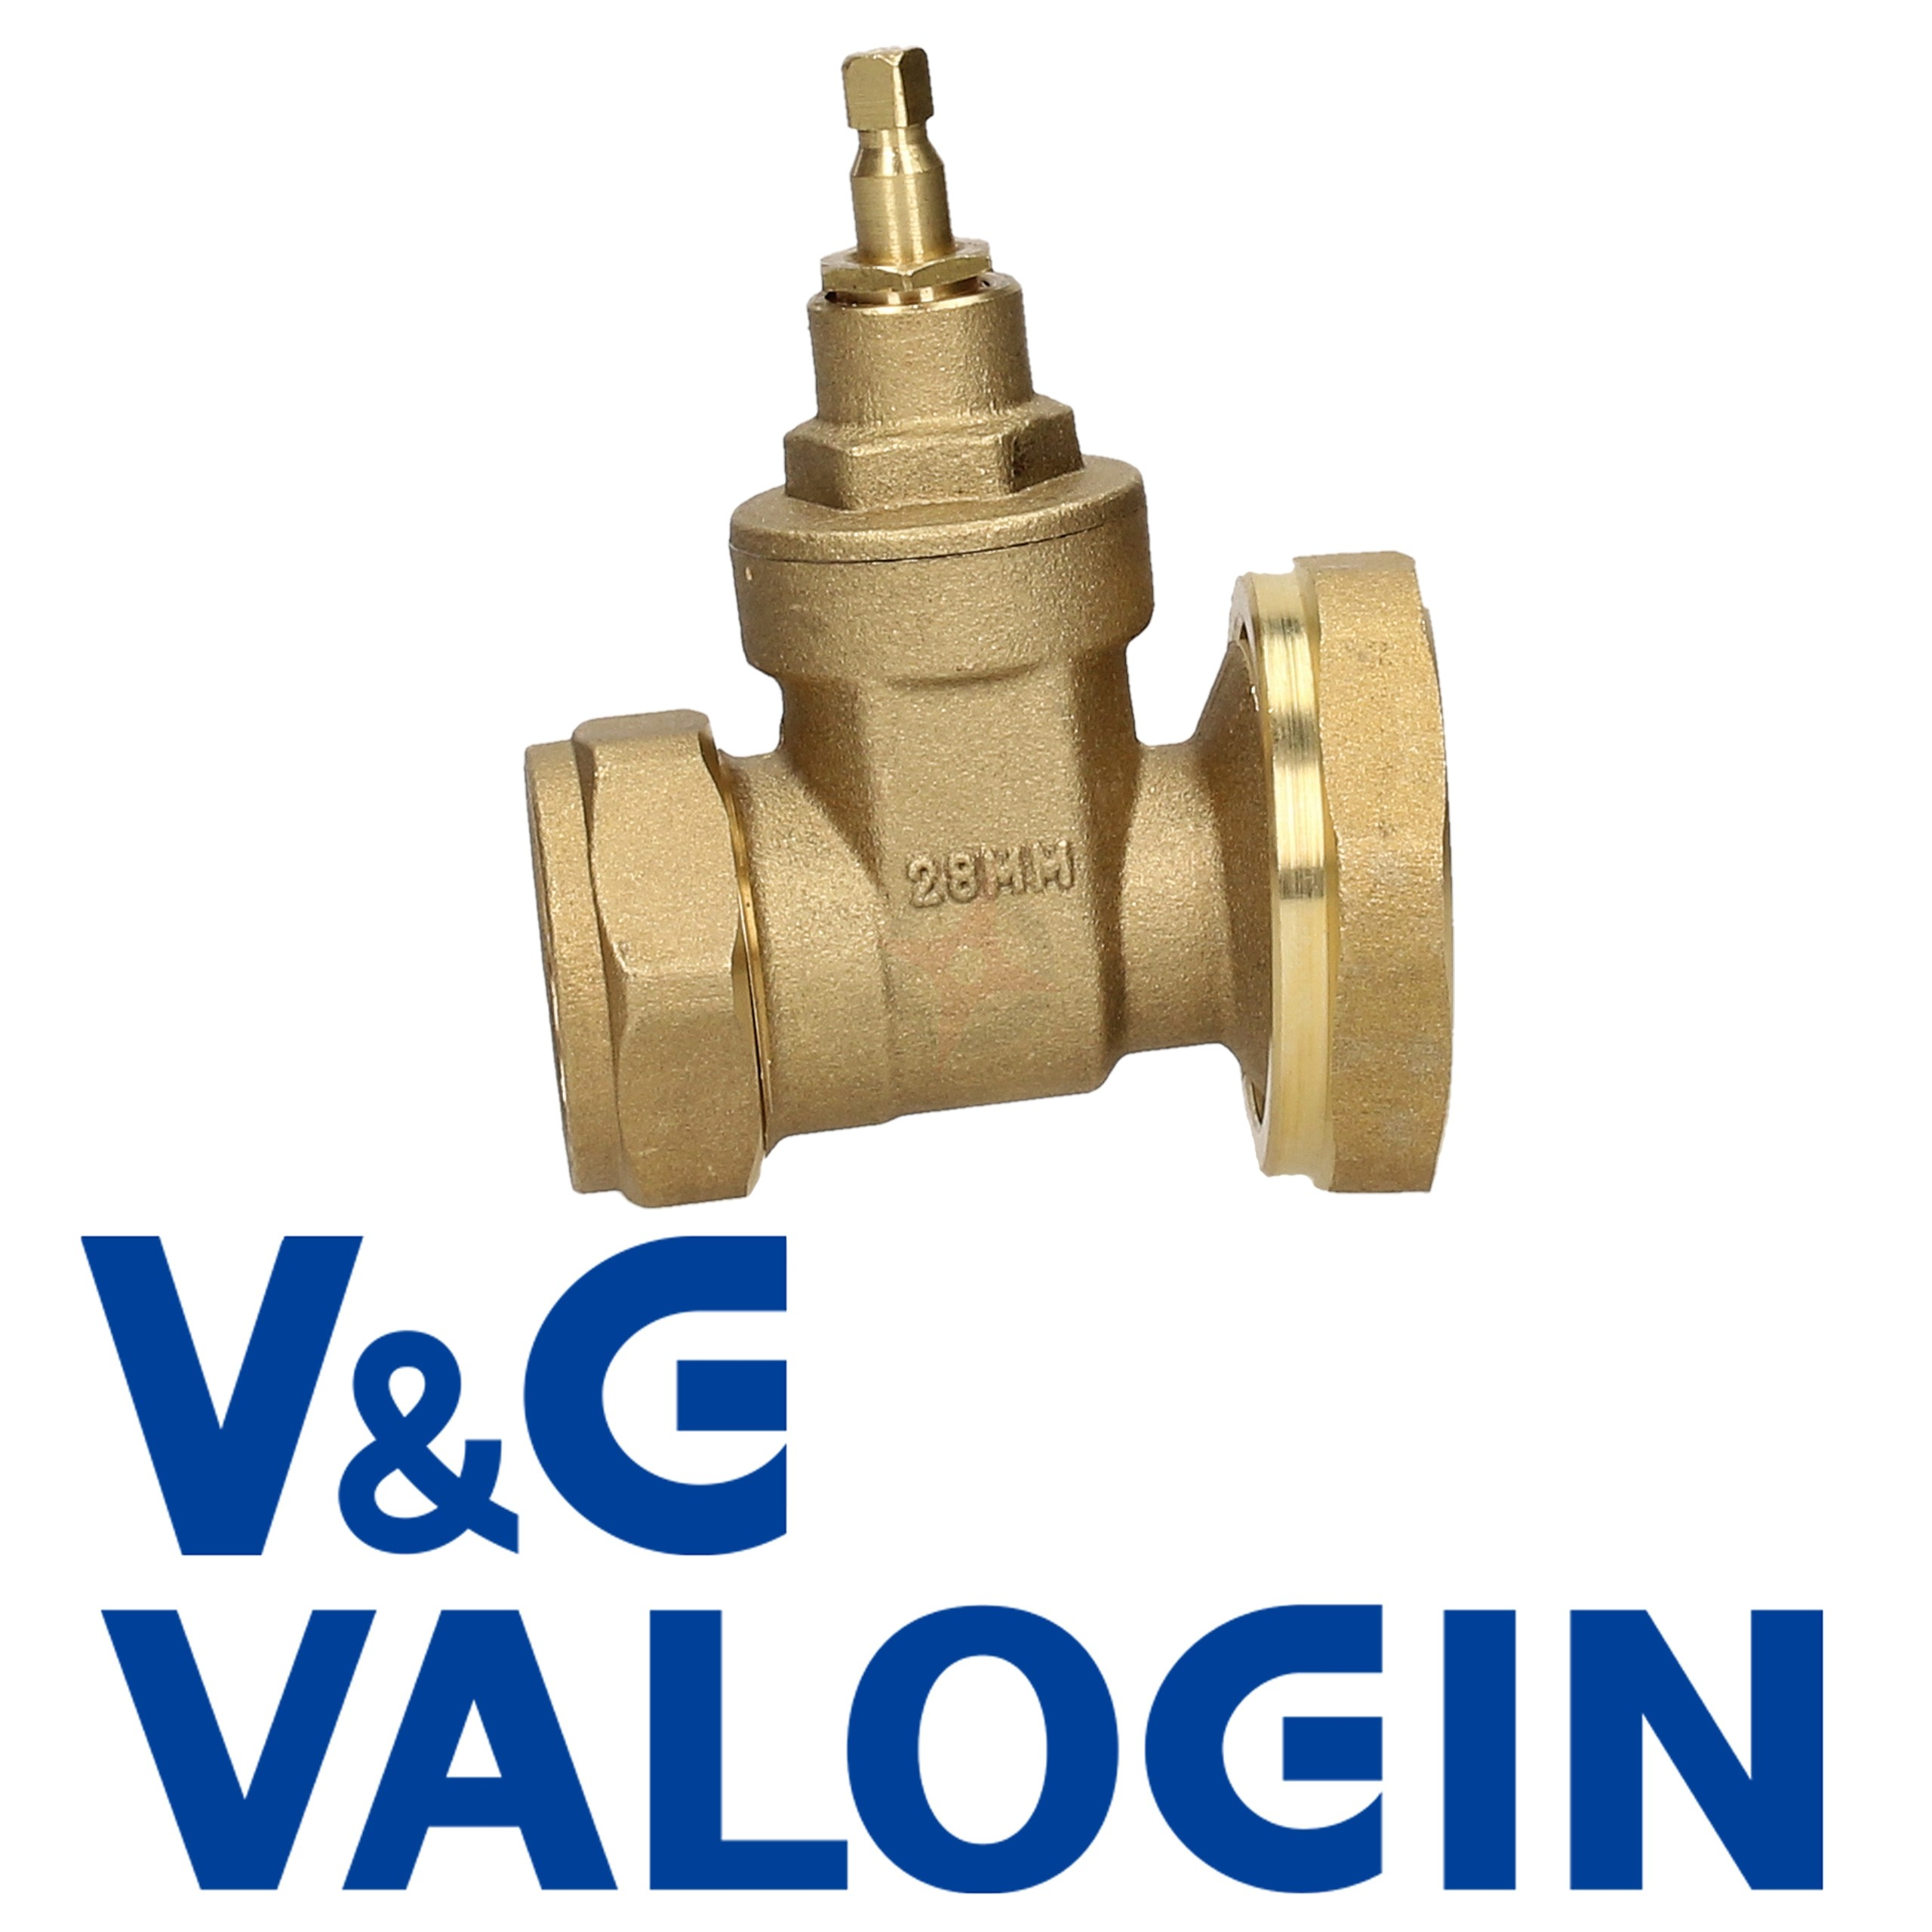 V&G 28mm Gate Type Pump Valve